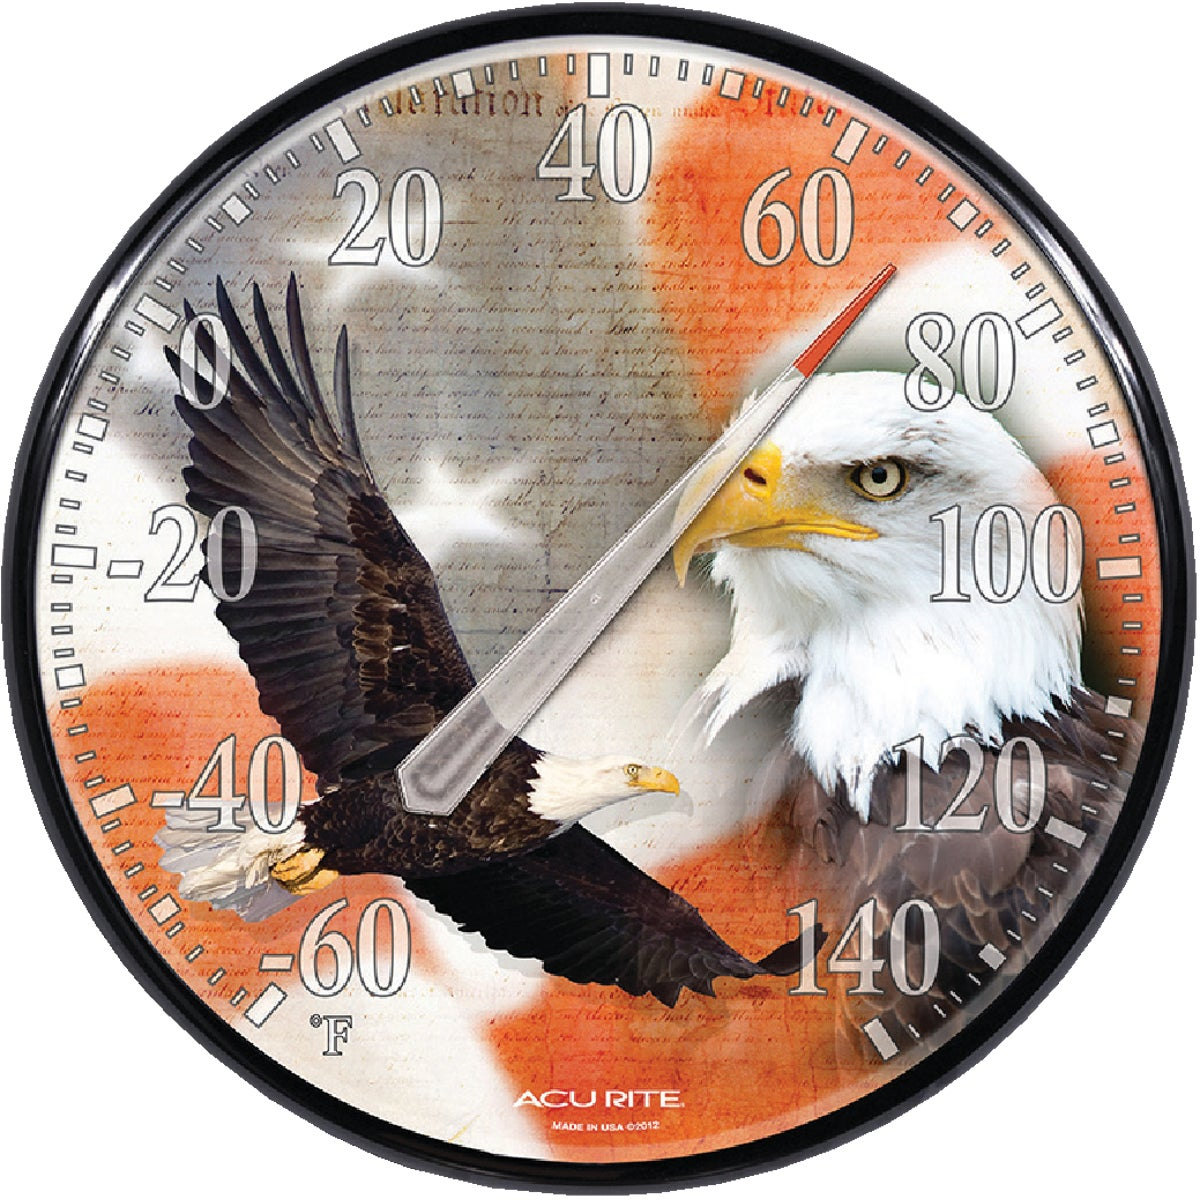 EAGLE/FLAG THERMOMETER - 01738A1 by Chaney Instrument Co